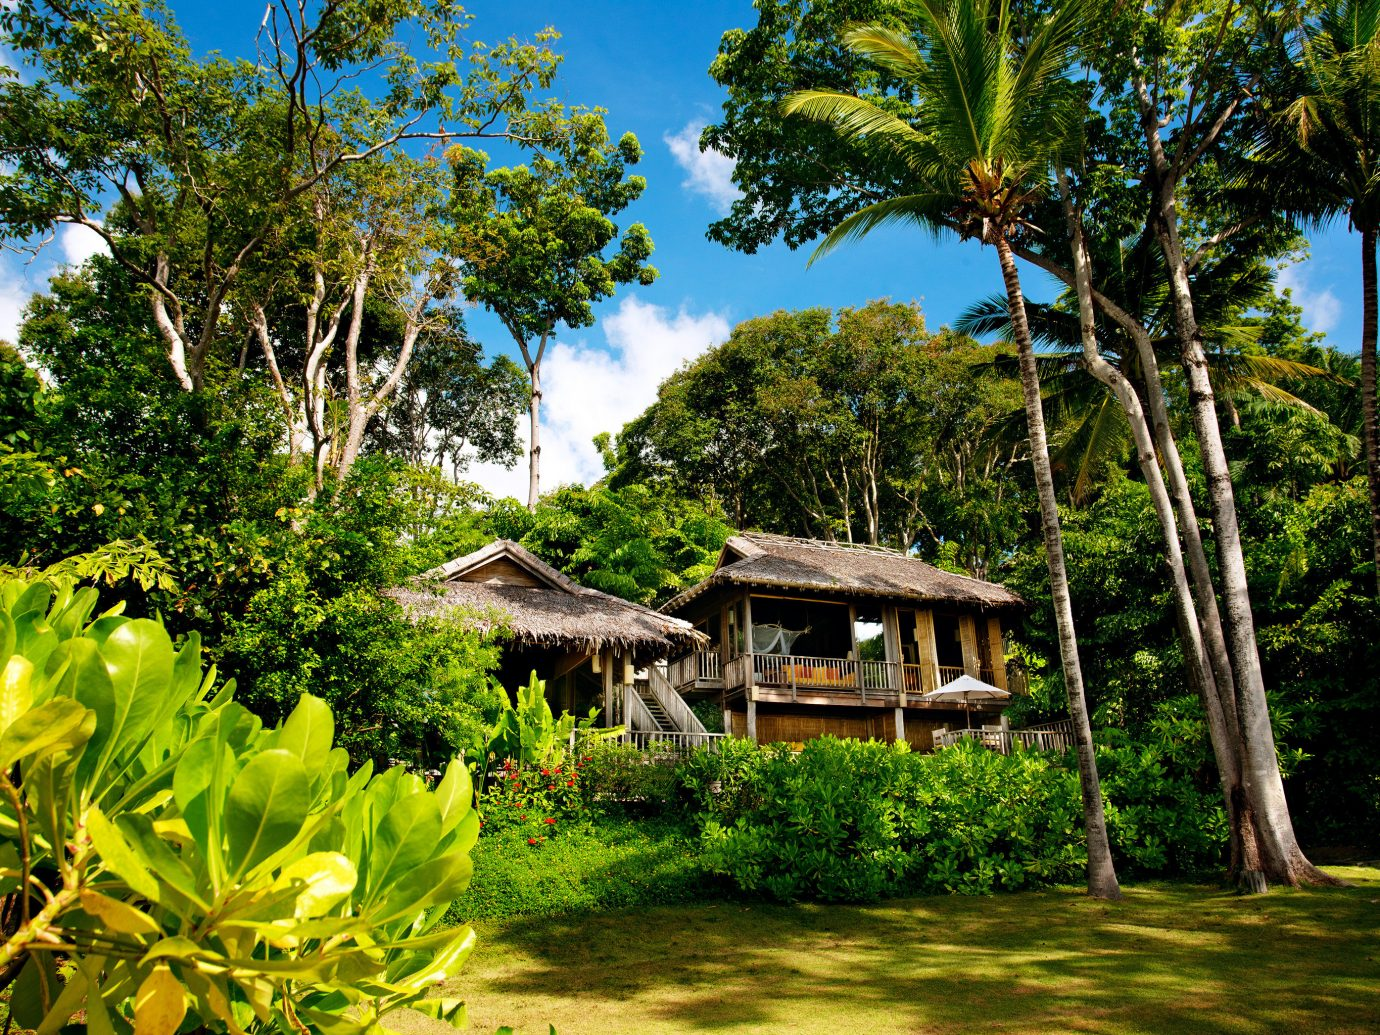 Beach Exterior Garden Grounds Hotels Phuket Thailand Tropical tree outdoor habitat natural environment plant botany house estate Jungle Forest tropics arecales woody plant rainforest rural area Resort flower plantation surrounded